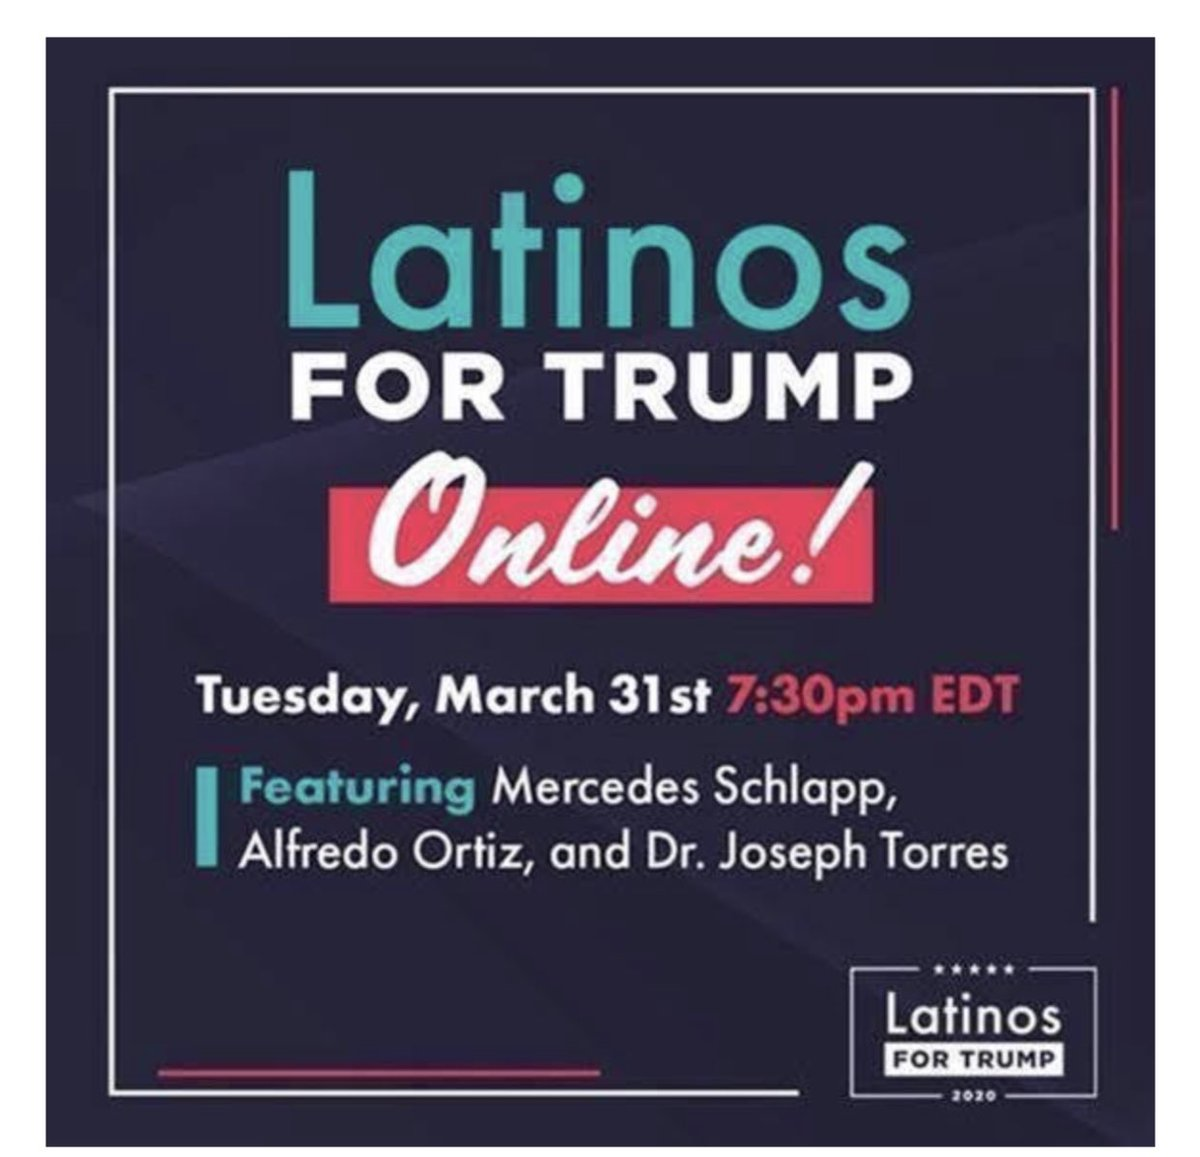 Friends/family join us tomorrow for an online event featuring Senior Advisor Mercedes Schlapp, Alfredo Ortiz, and Dr. Joseph Torres.This online event will be a panel discussion where we discuss President Trump's response to COVID-19 and outlook for our community #LatinosForTrump pic.twitter.com/WEhQXSkaR6